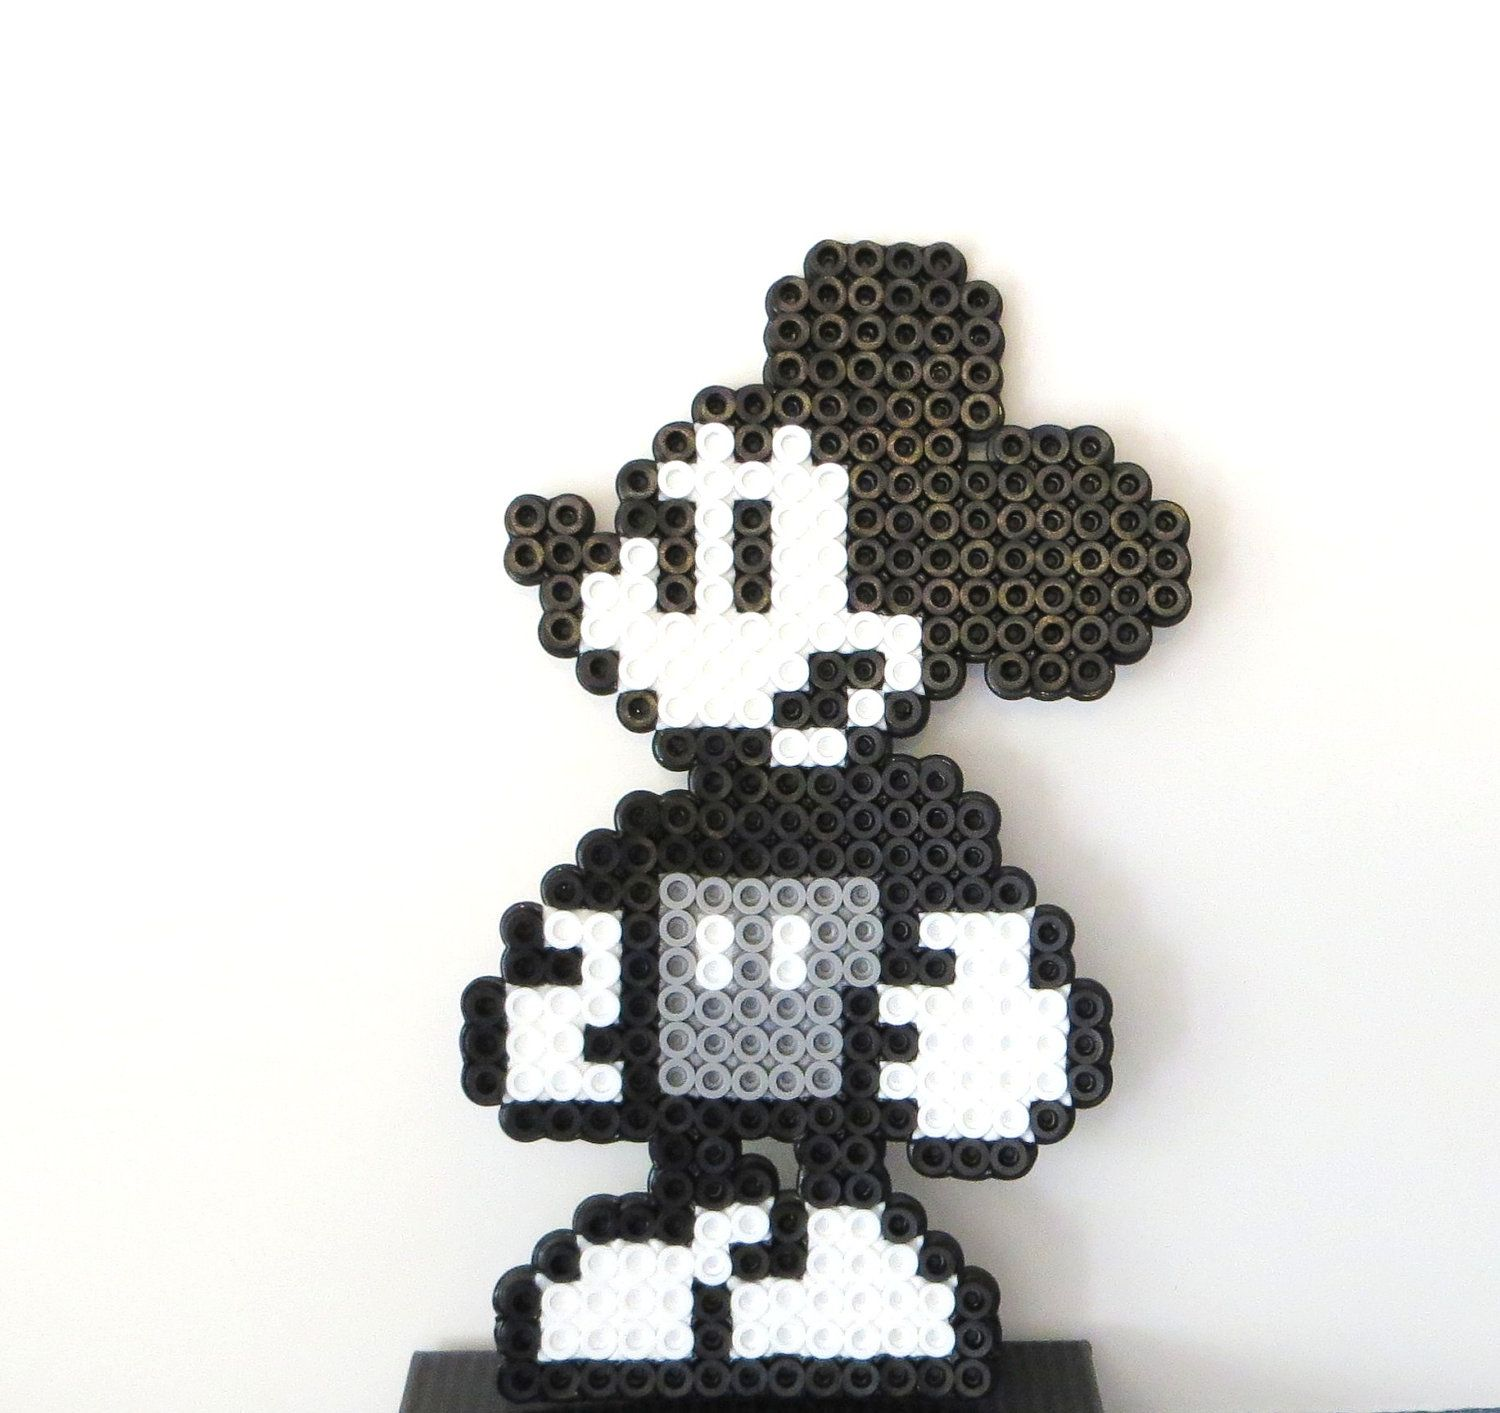 Mickey Mouse Pixel Art steamboat willie- mickey- pixel art created with perler